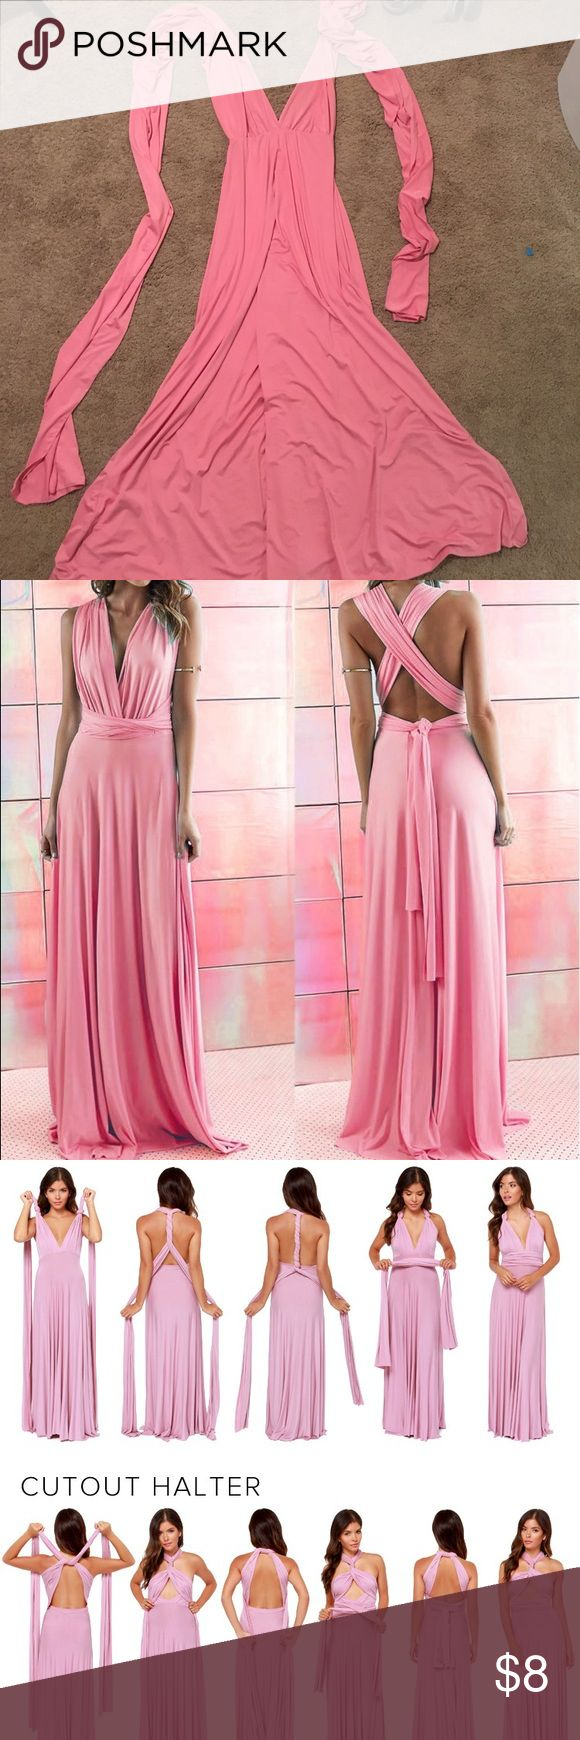 Wrap maxi dress So pink and so beautiful! I wore this out to dinner for my honeymoon and got so many compliments. It feels like wearing a night gown! Also, there are ENDLESS ways to style it. So make it your own! Dresses Maxi